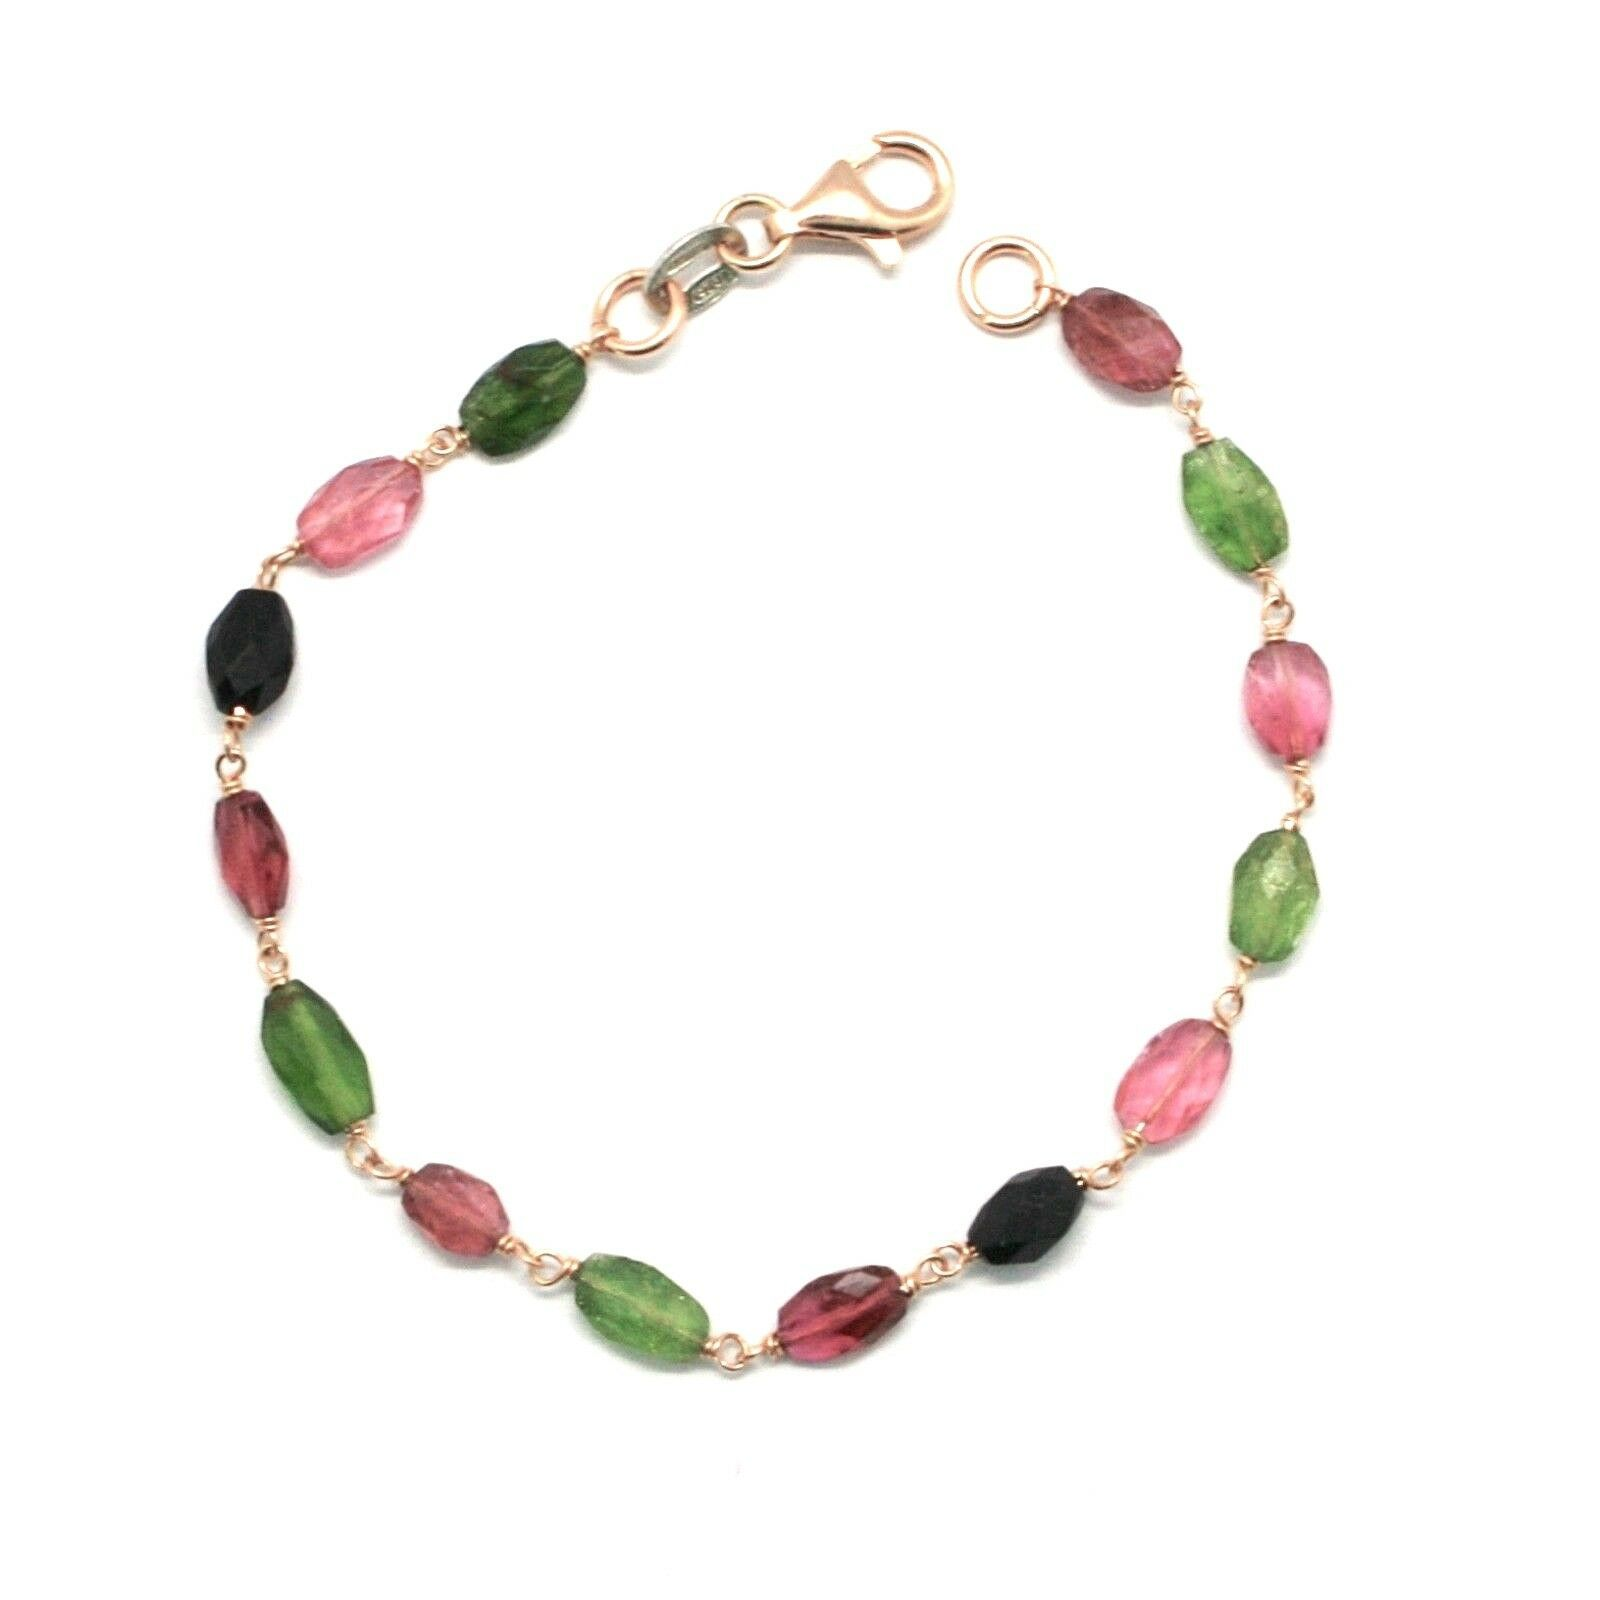 Silver Bracelet 925 with Tourmaline Green and Pink Faceted Made in Italy